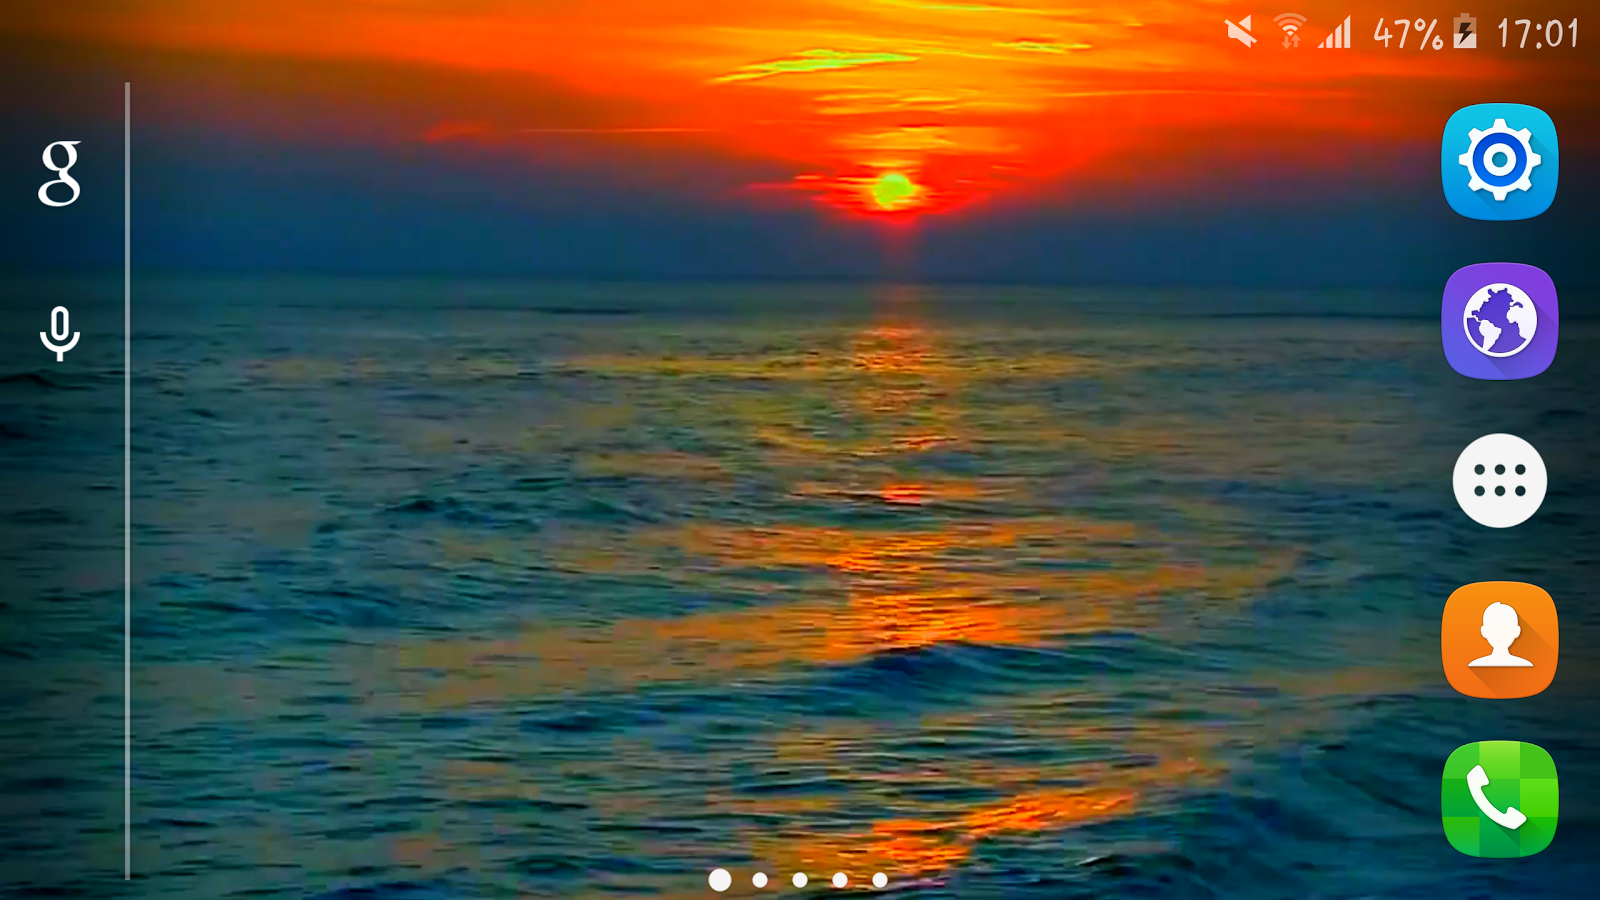 Ocean Live Wallpaper   Android Apps on Google Play 1600x900